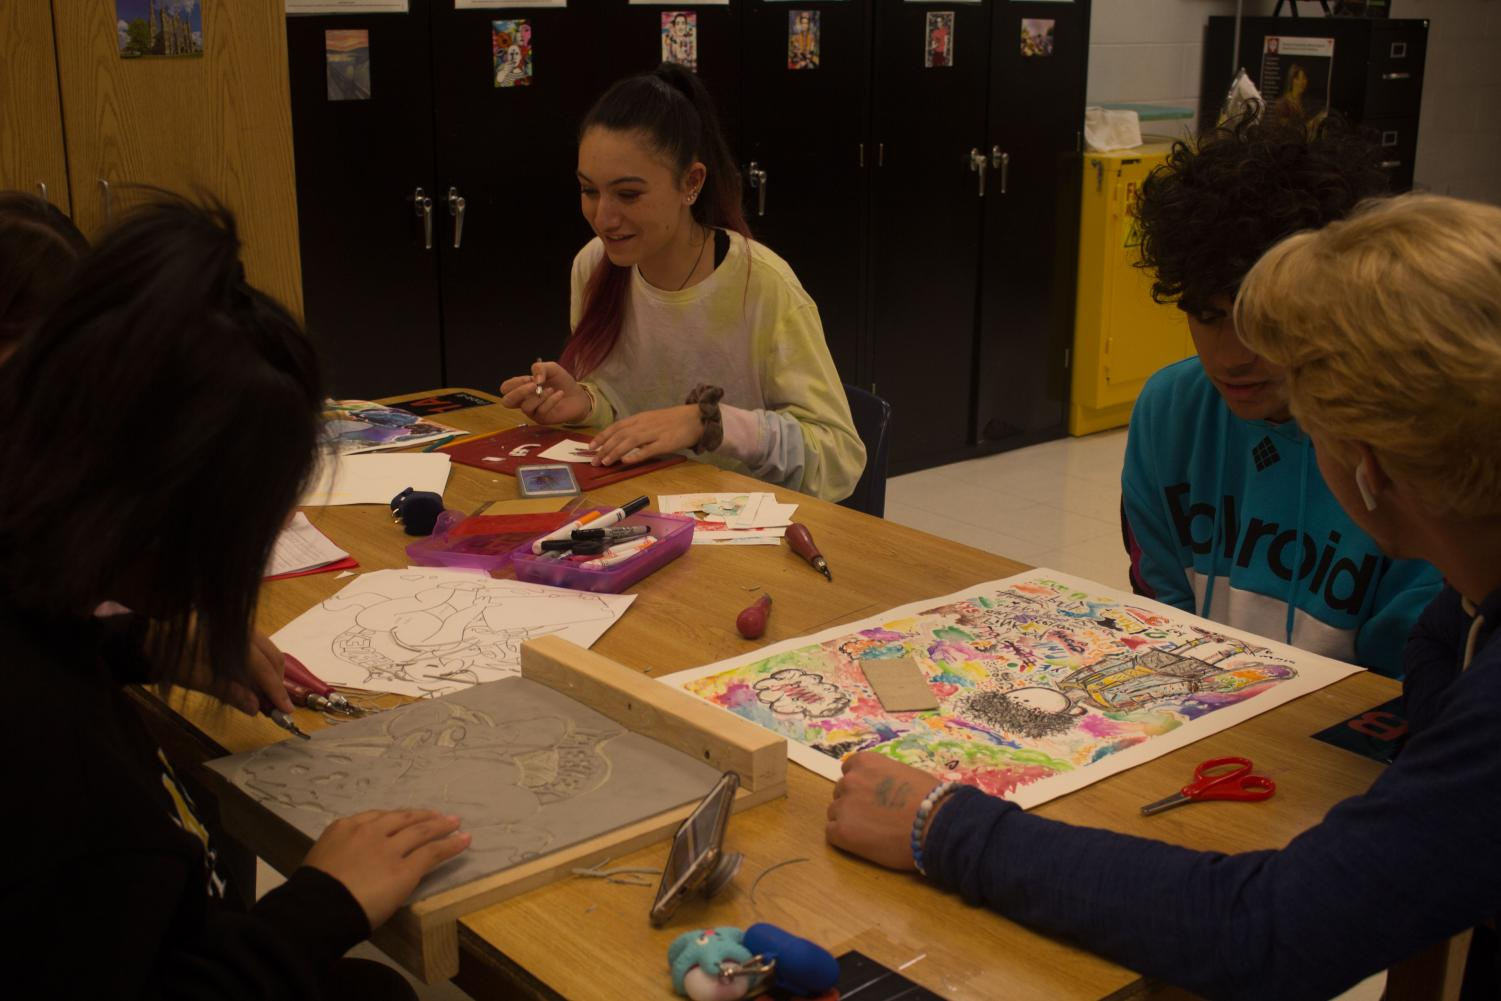 Students finish and discuss art projects.